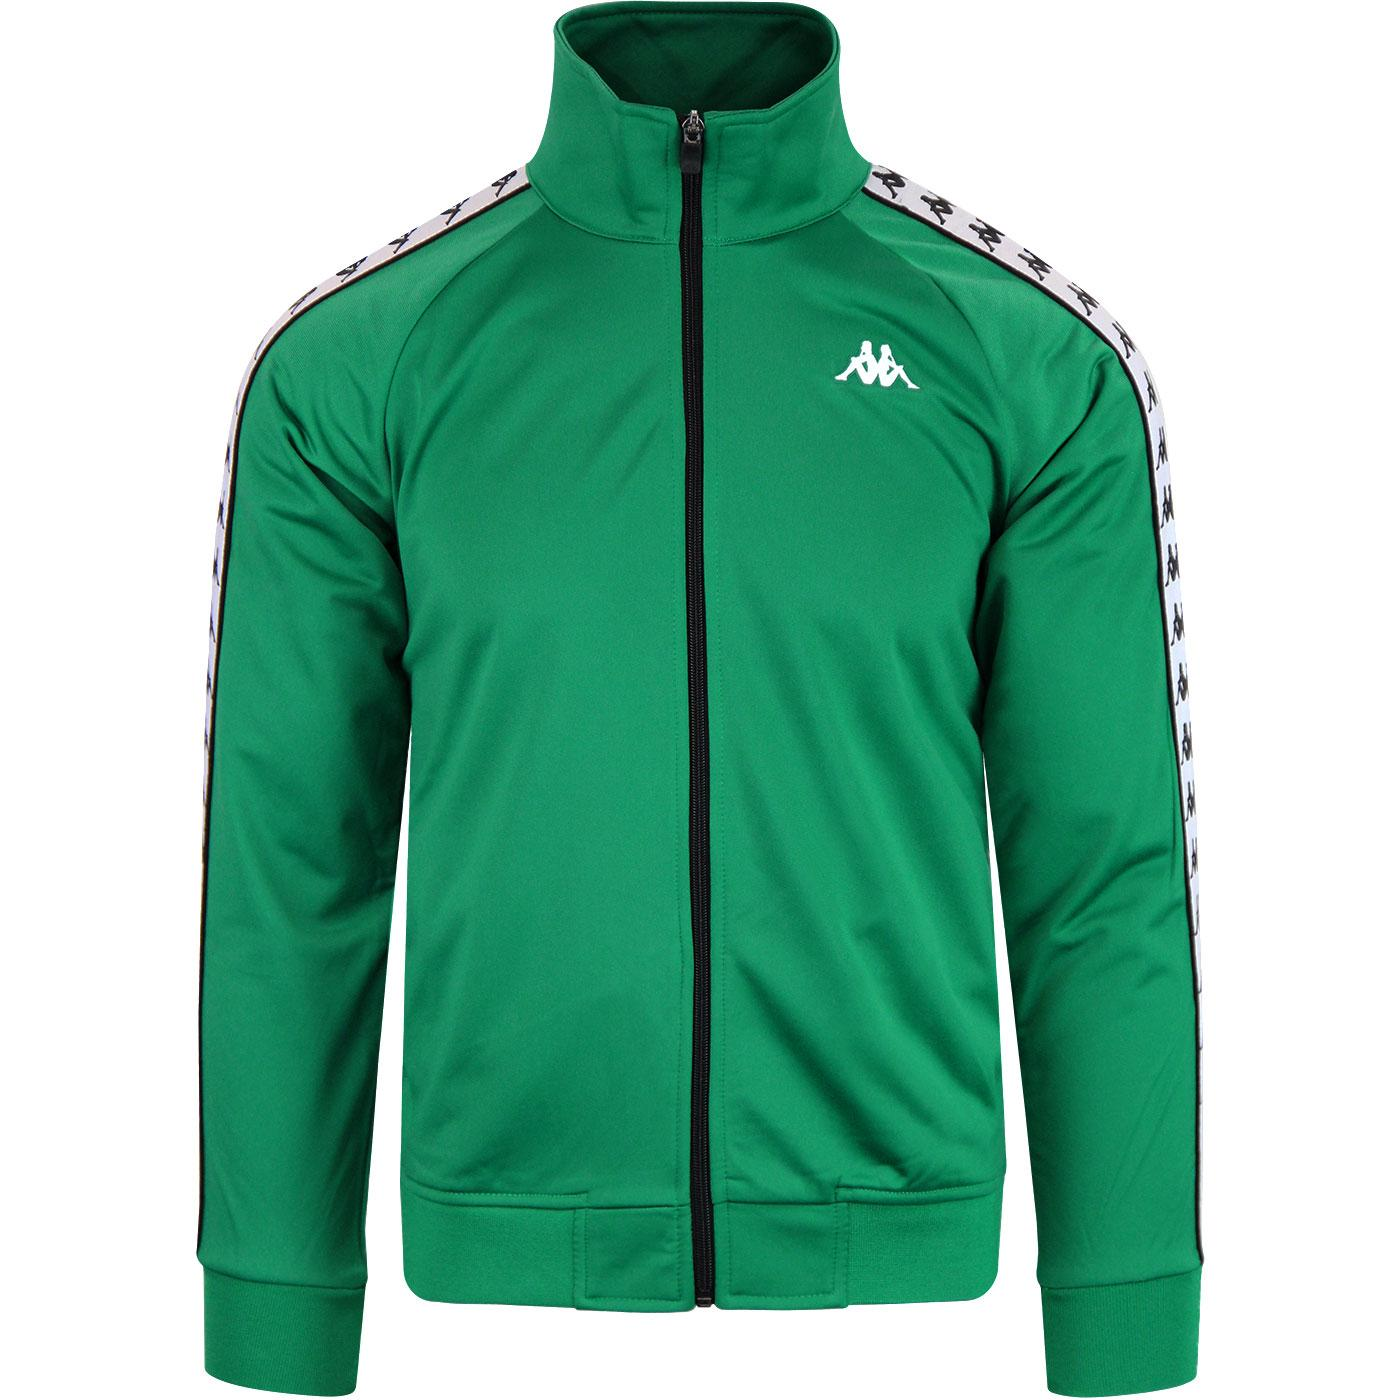 Anniston KAPPA 222 Banda Track Jacket GREEN/WHITE